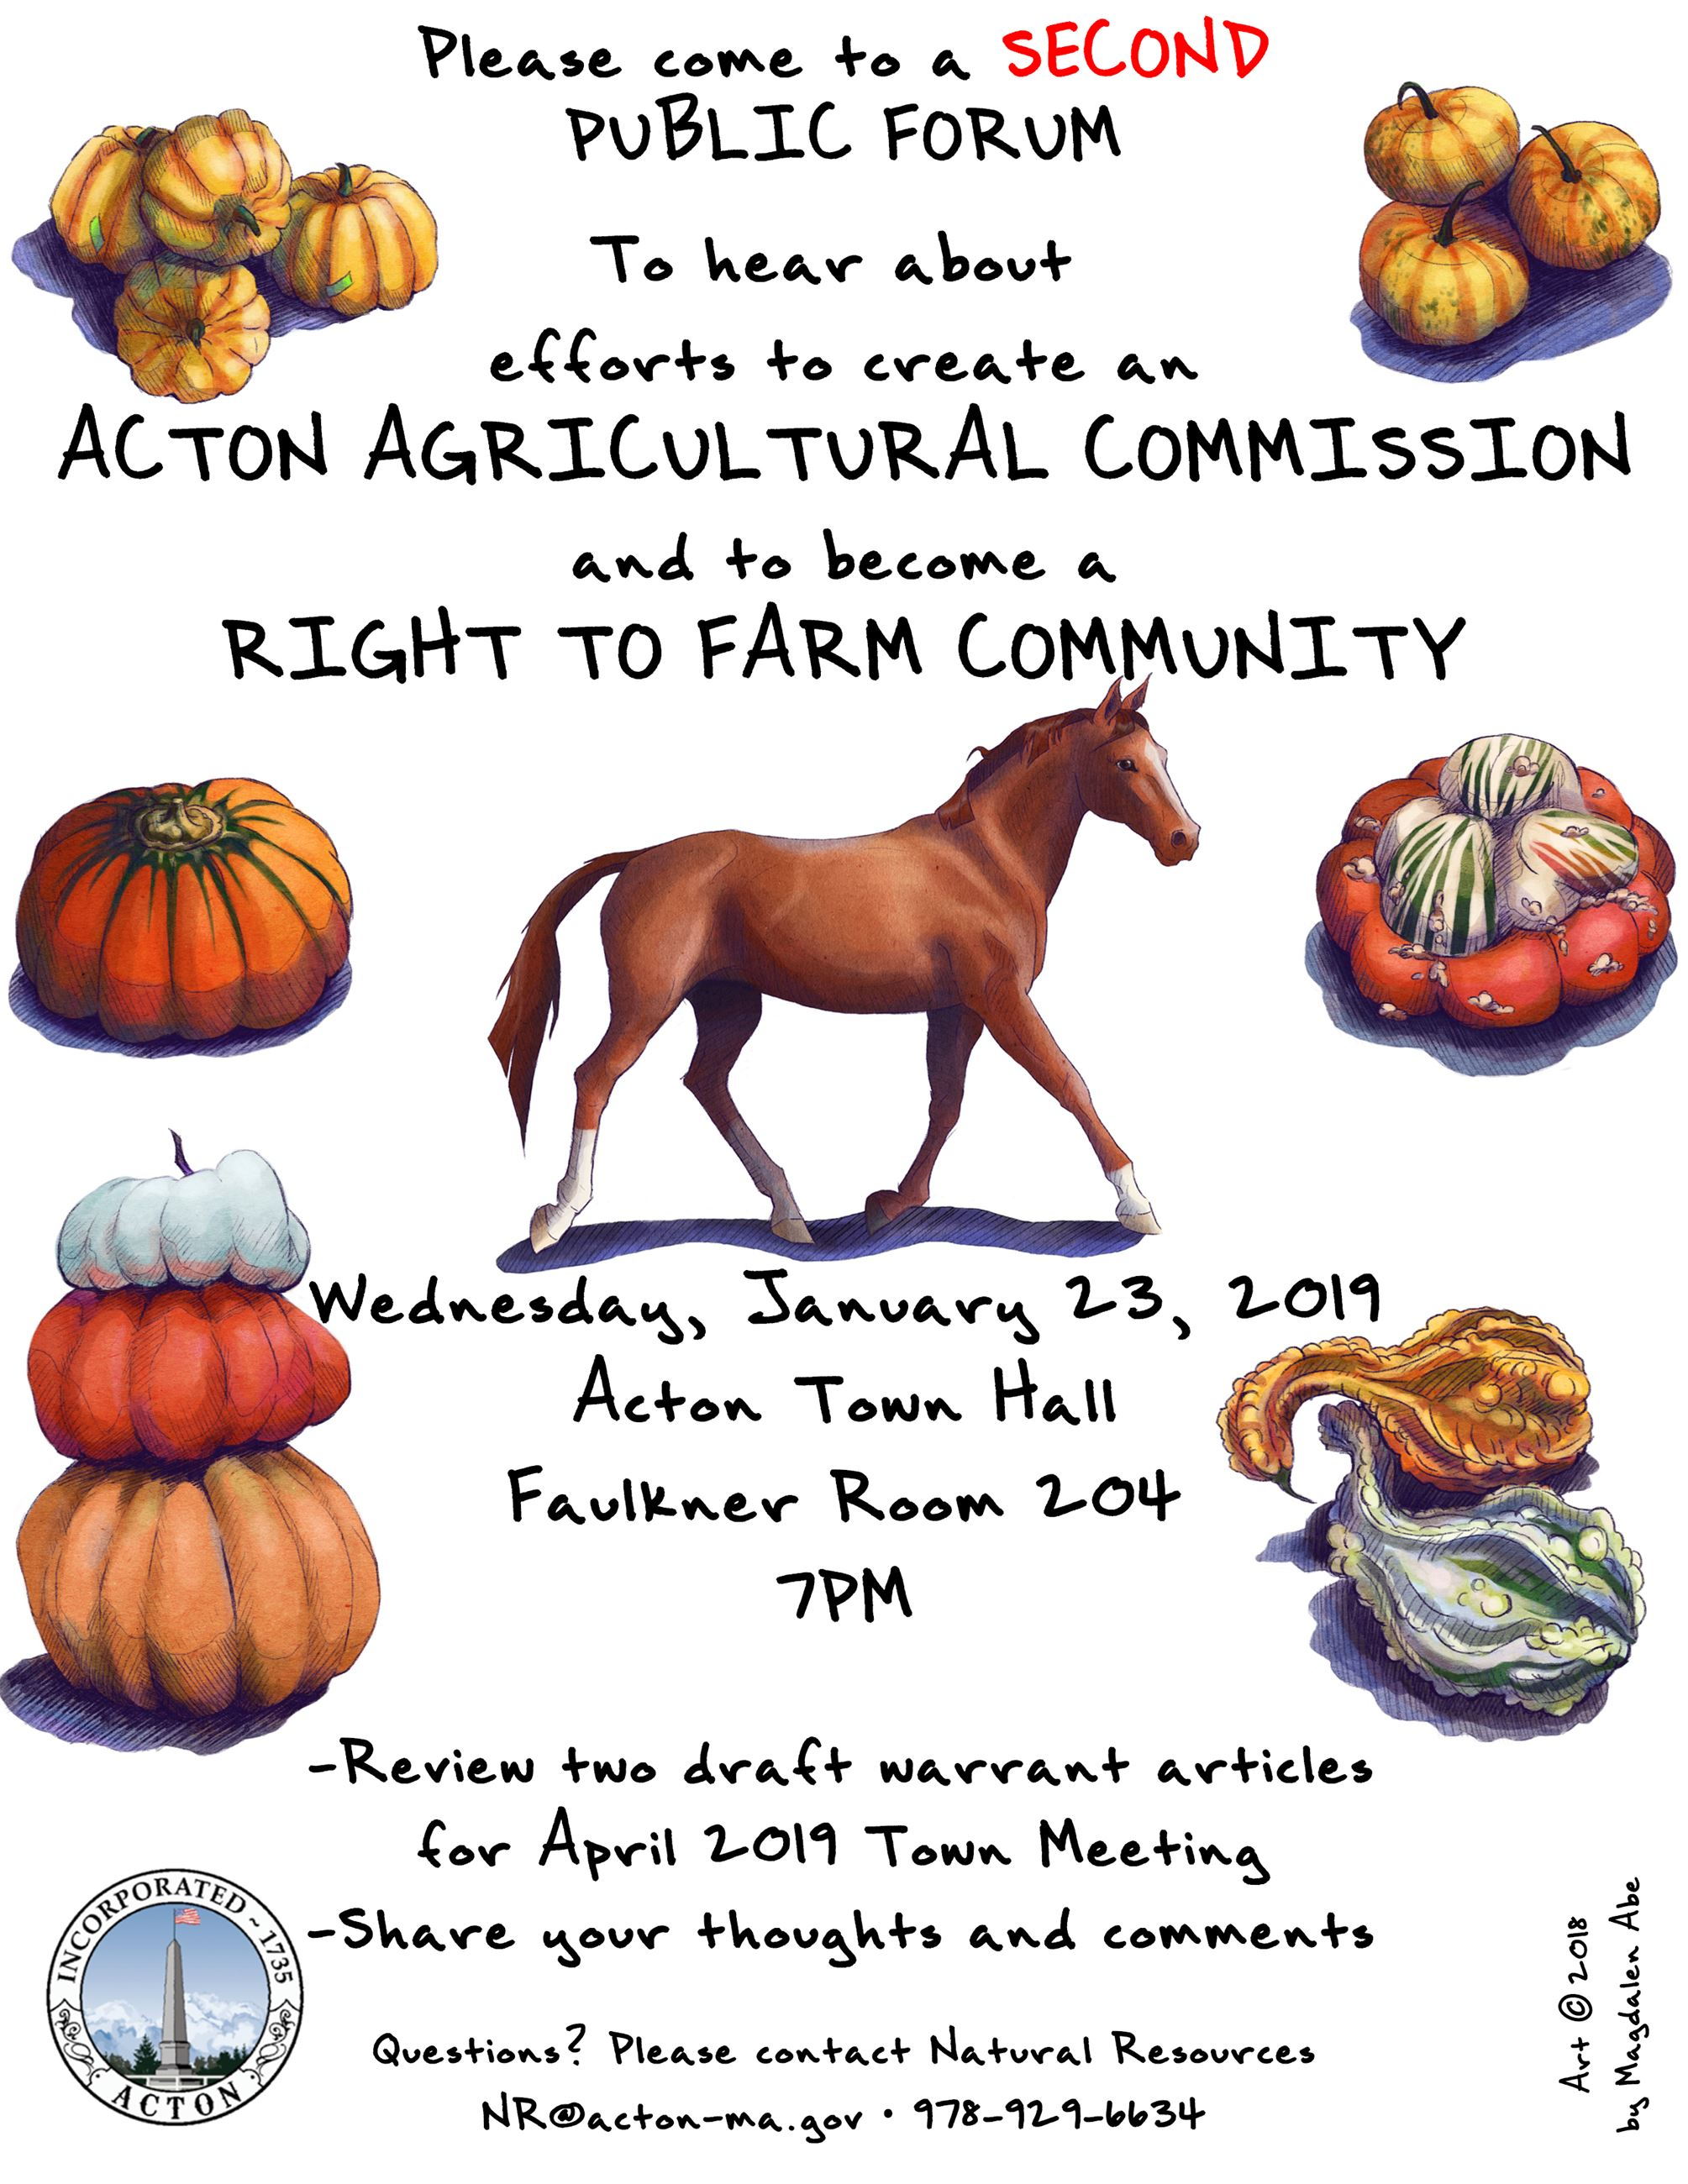 Acton Agricultural Commission Public Forum